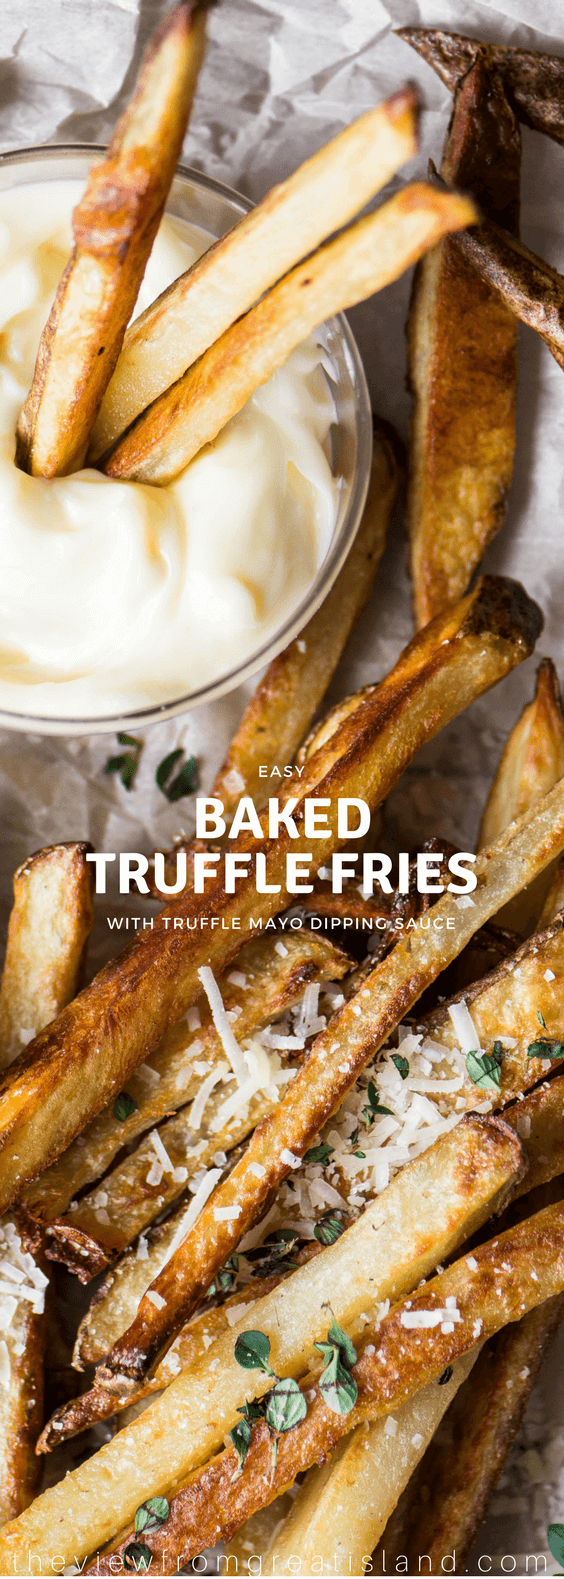 Baked Truffle Fries are a healthier, lower fat version of my current restaurant appetizer obsession ~ truffle oil and truffle salt give it an over the top decadent truffle flavor. #appetizer #frenchfries #truffles #truffleoil #trufflesalt #bakedfries